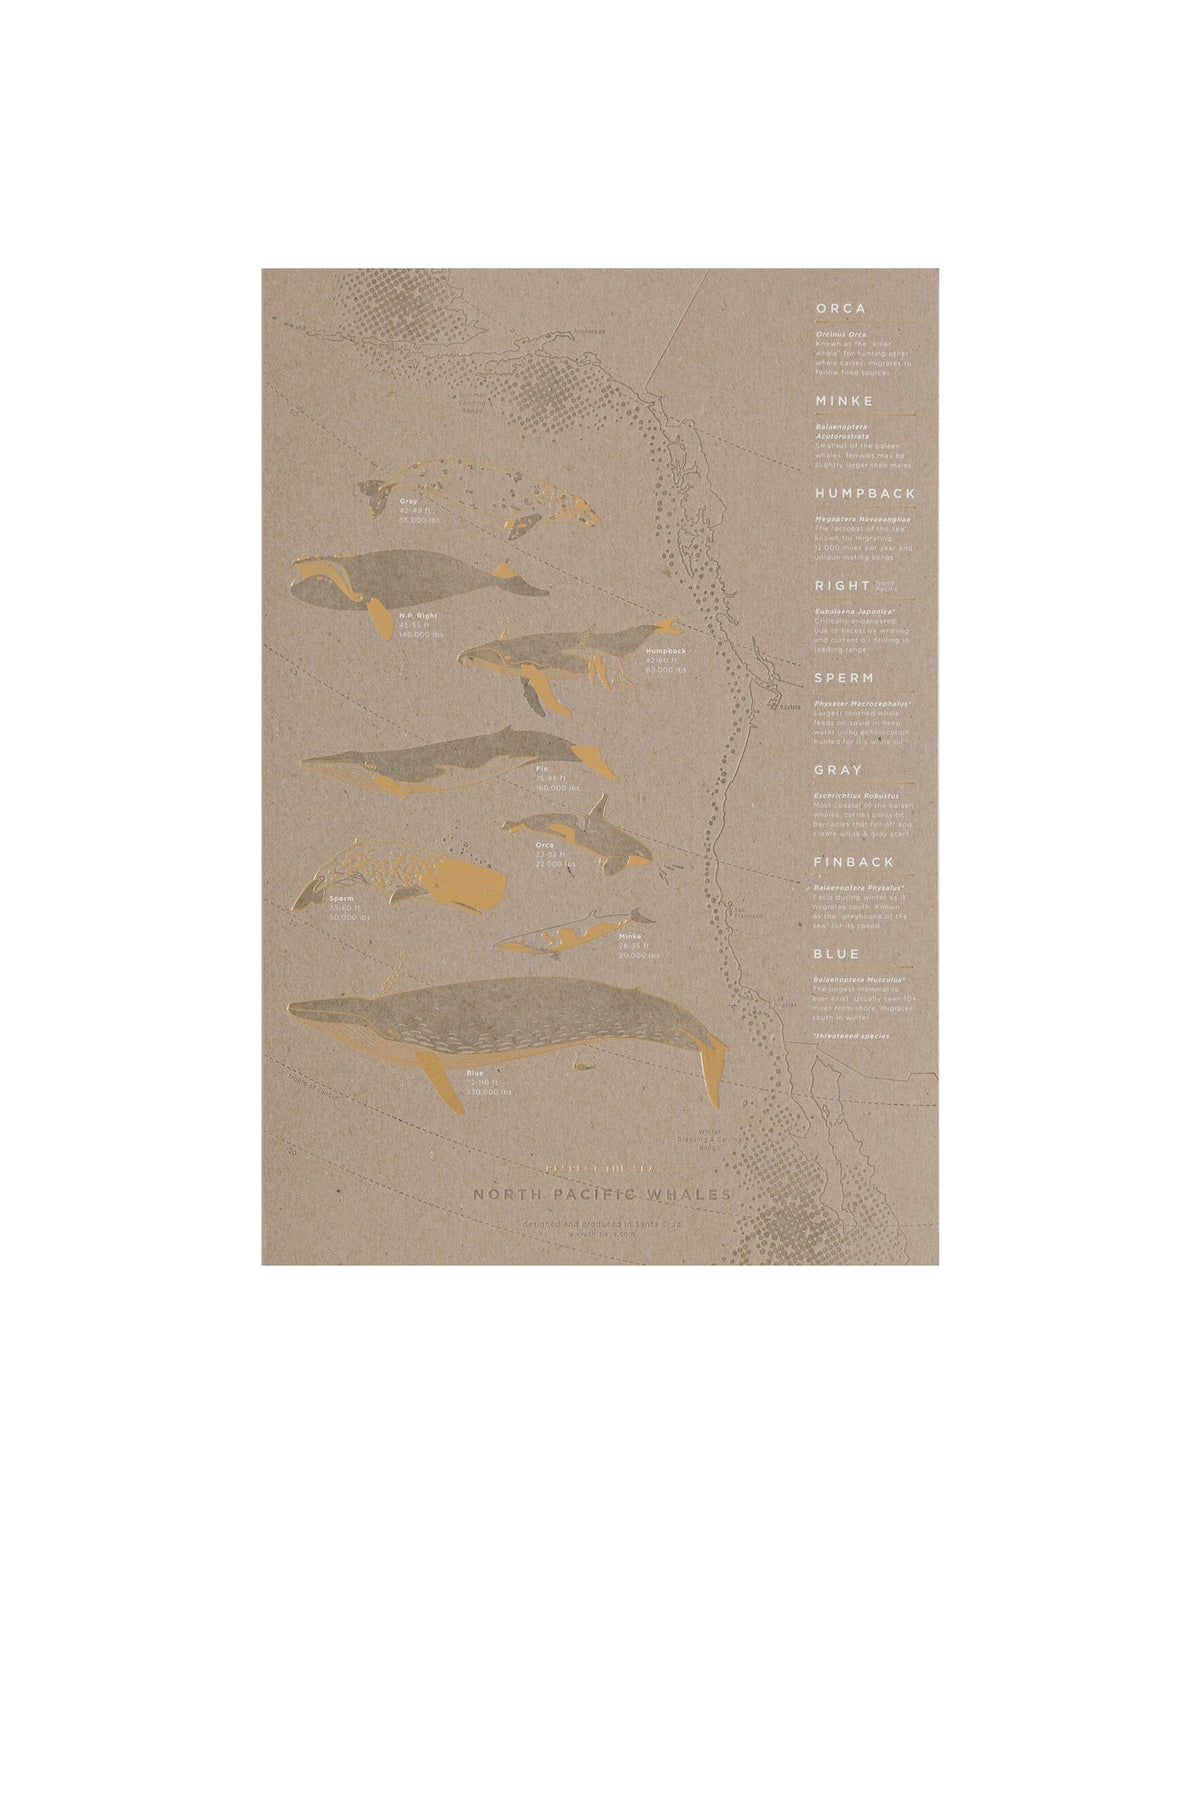 Image of North Pacific Whale Migration Letterpress Poster